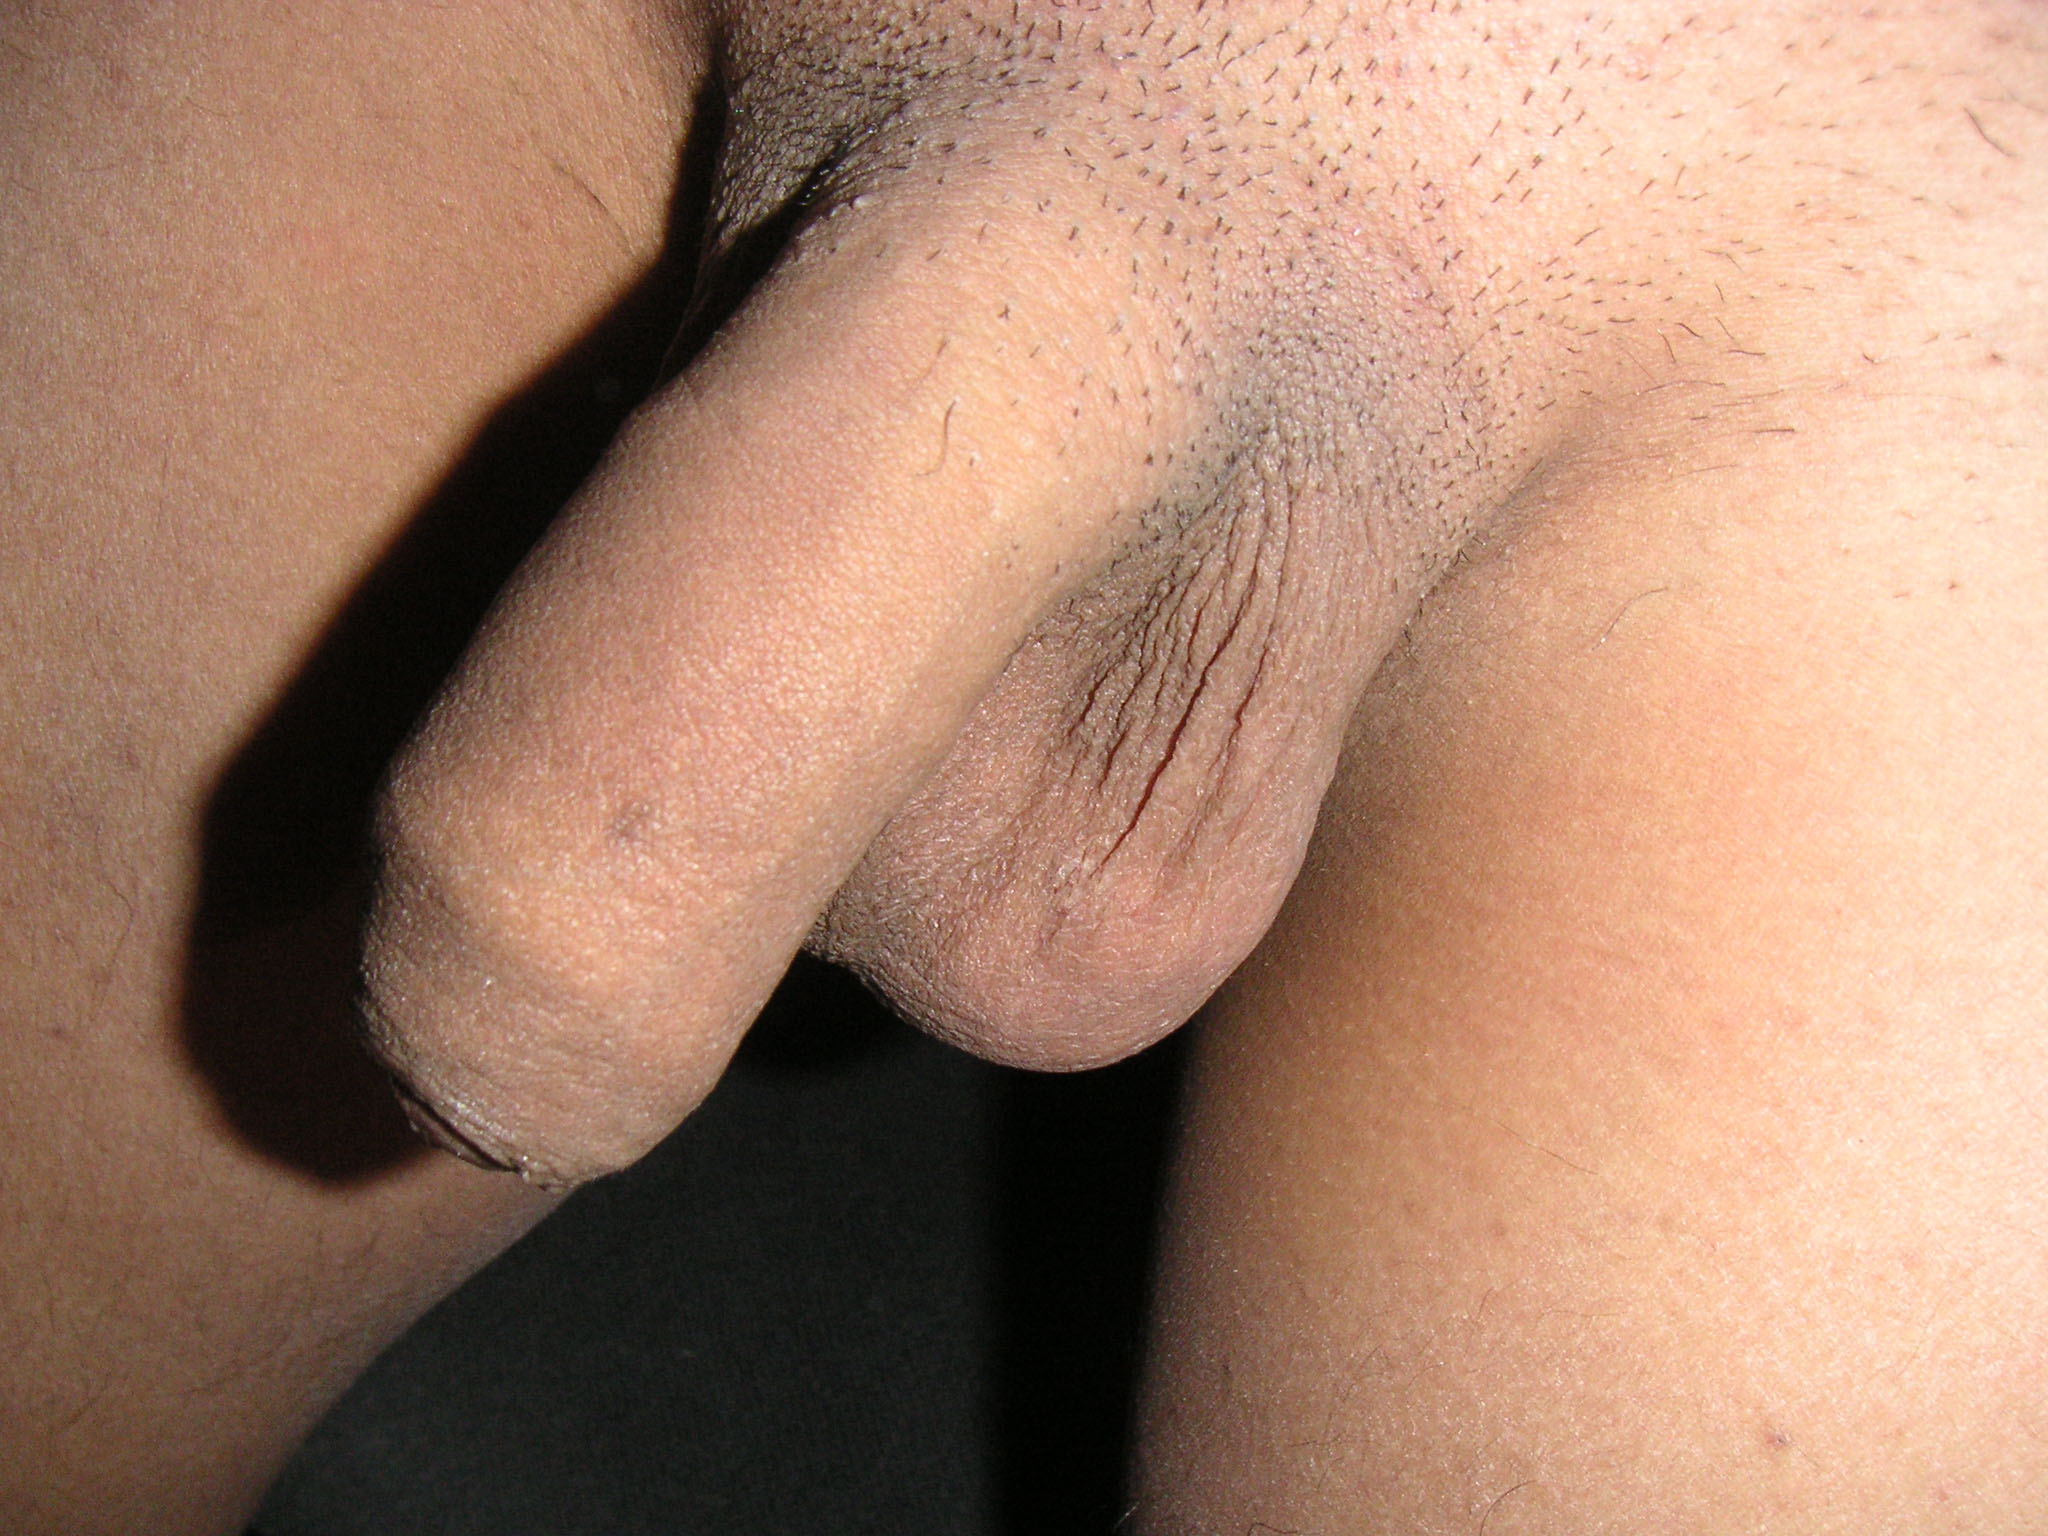 Pictures Of Flaccid Penis 60